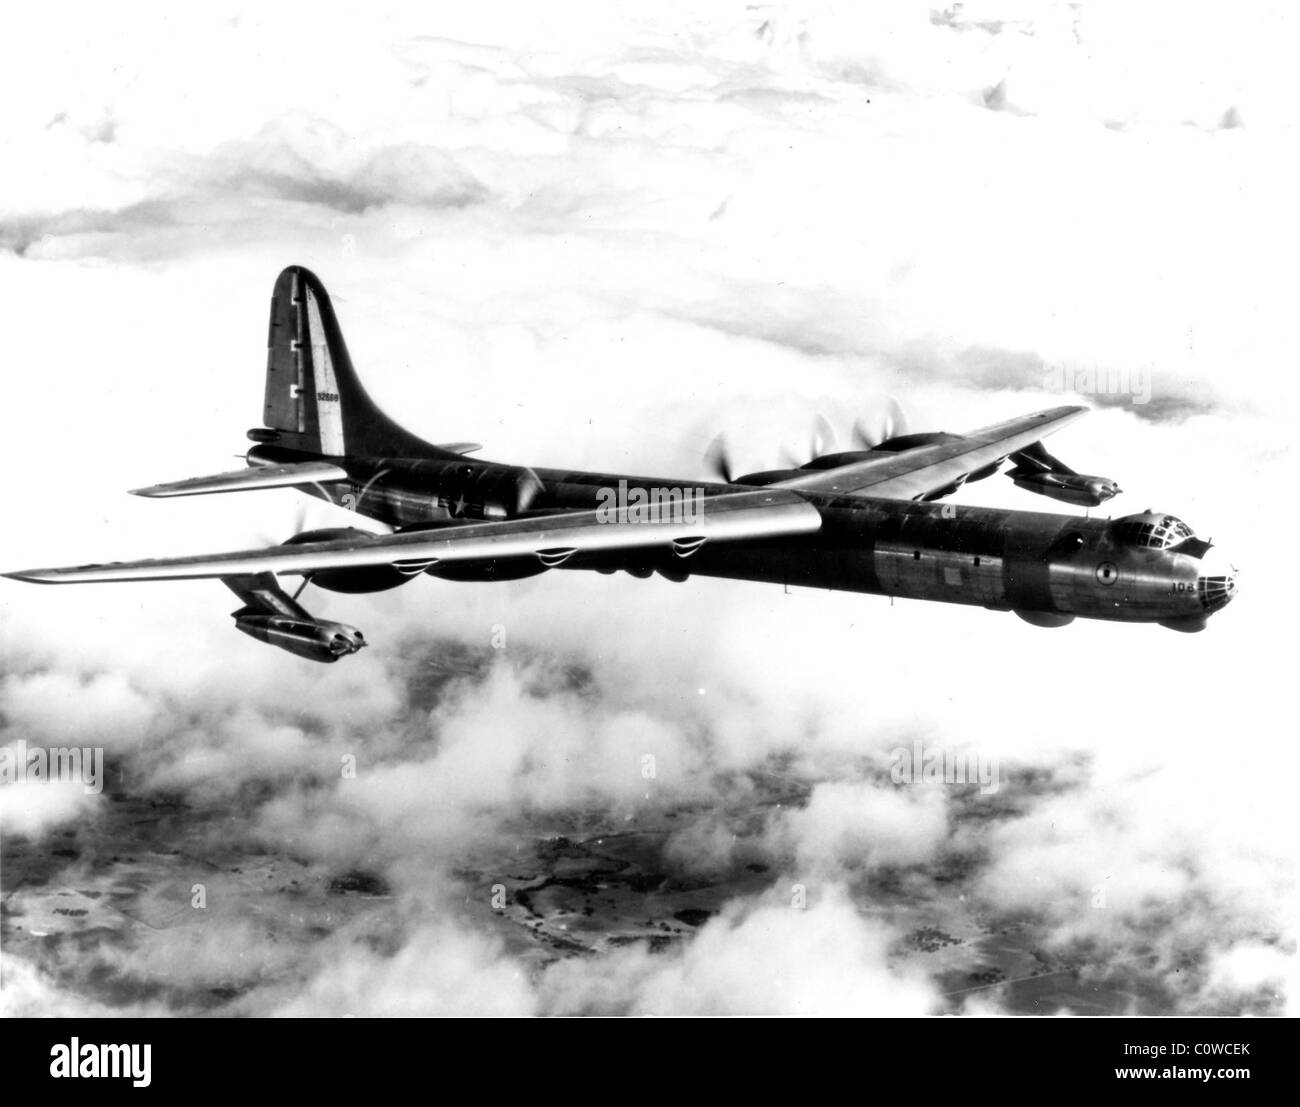 Convair RB-36-D, the jet-augmented version of the U.S. Air Force's intercontinental strategic bomber. - Stock Image